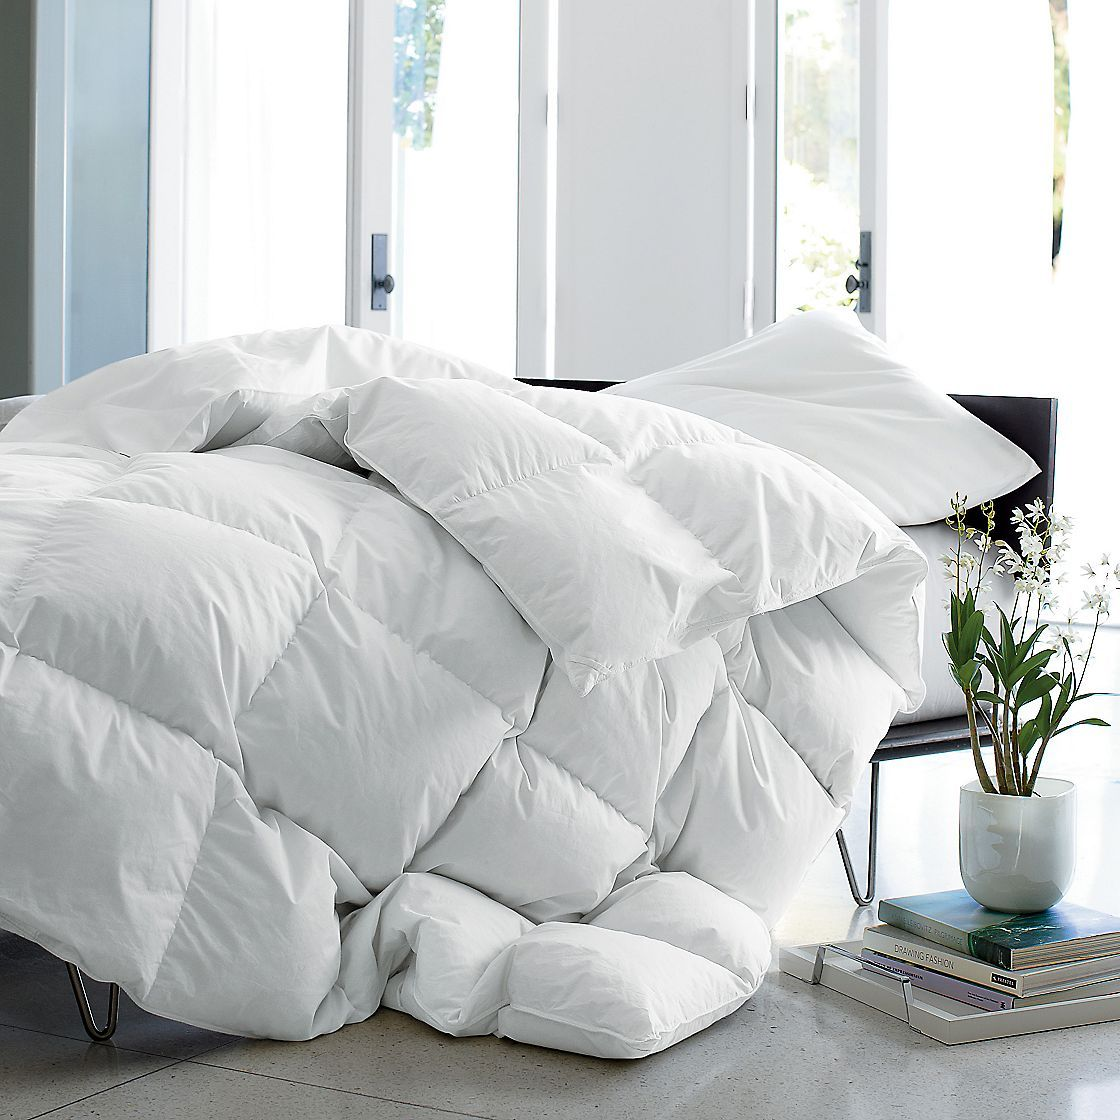 Voted Best Heavyweight Comforter By Real Simple Magazine White Down Comforter Down Comforter Down Comforters